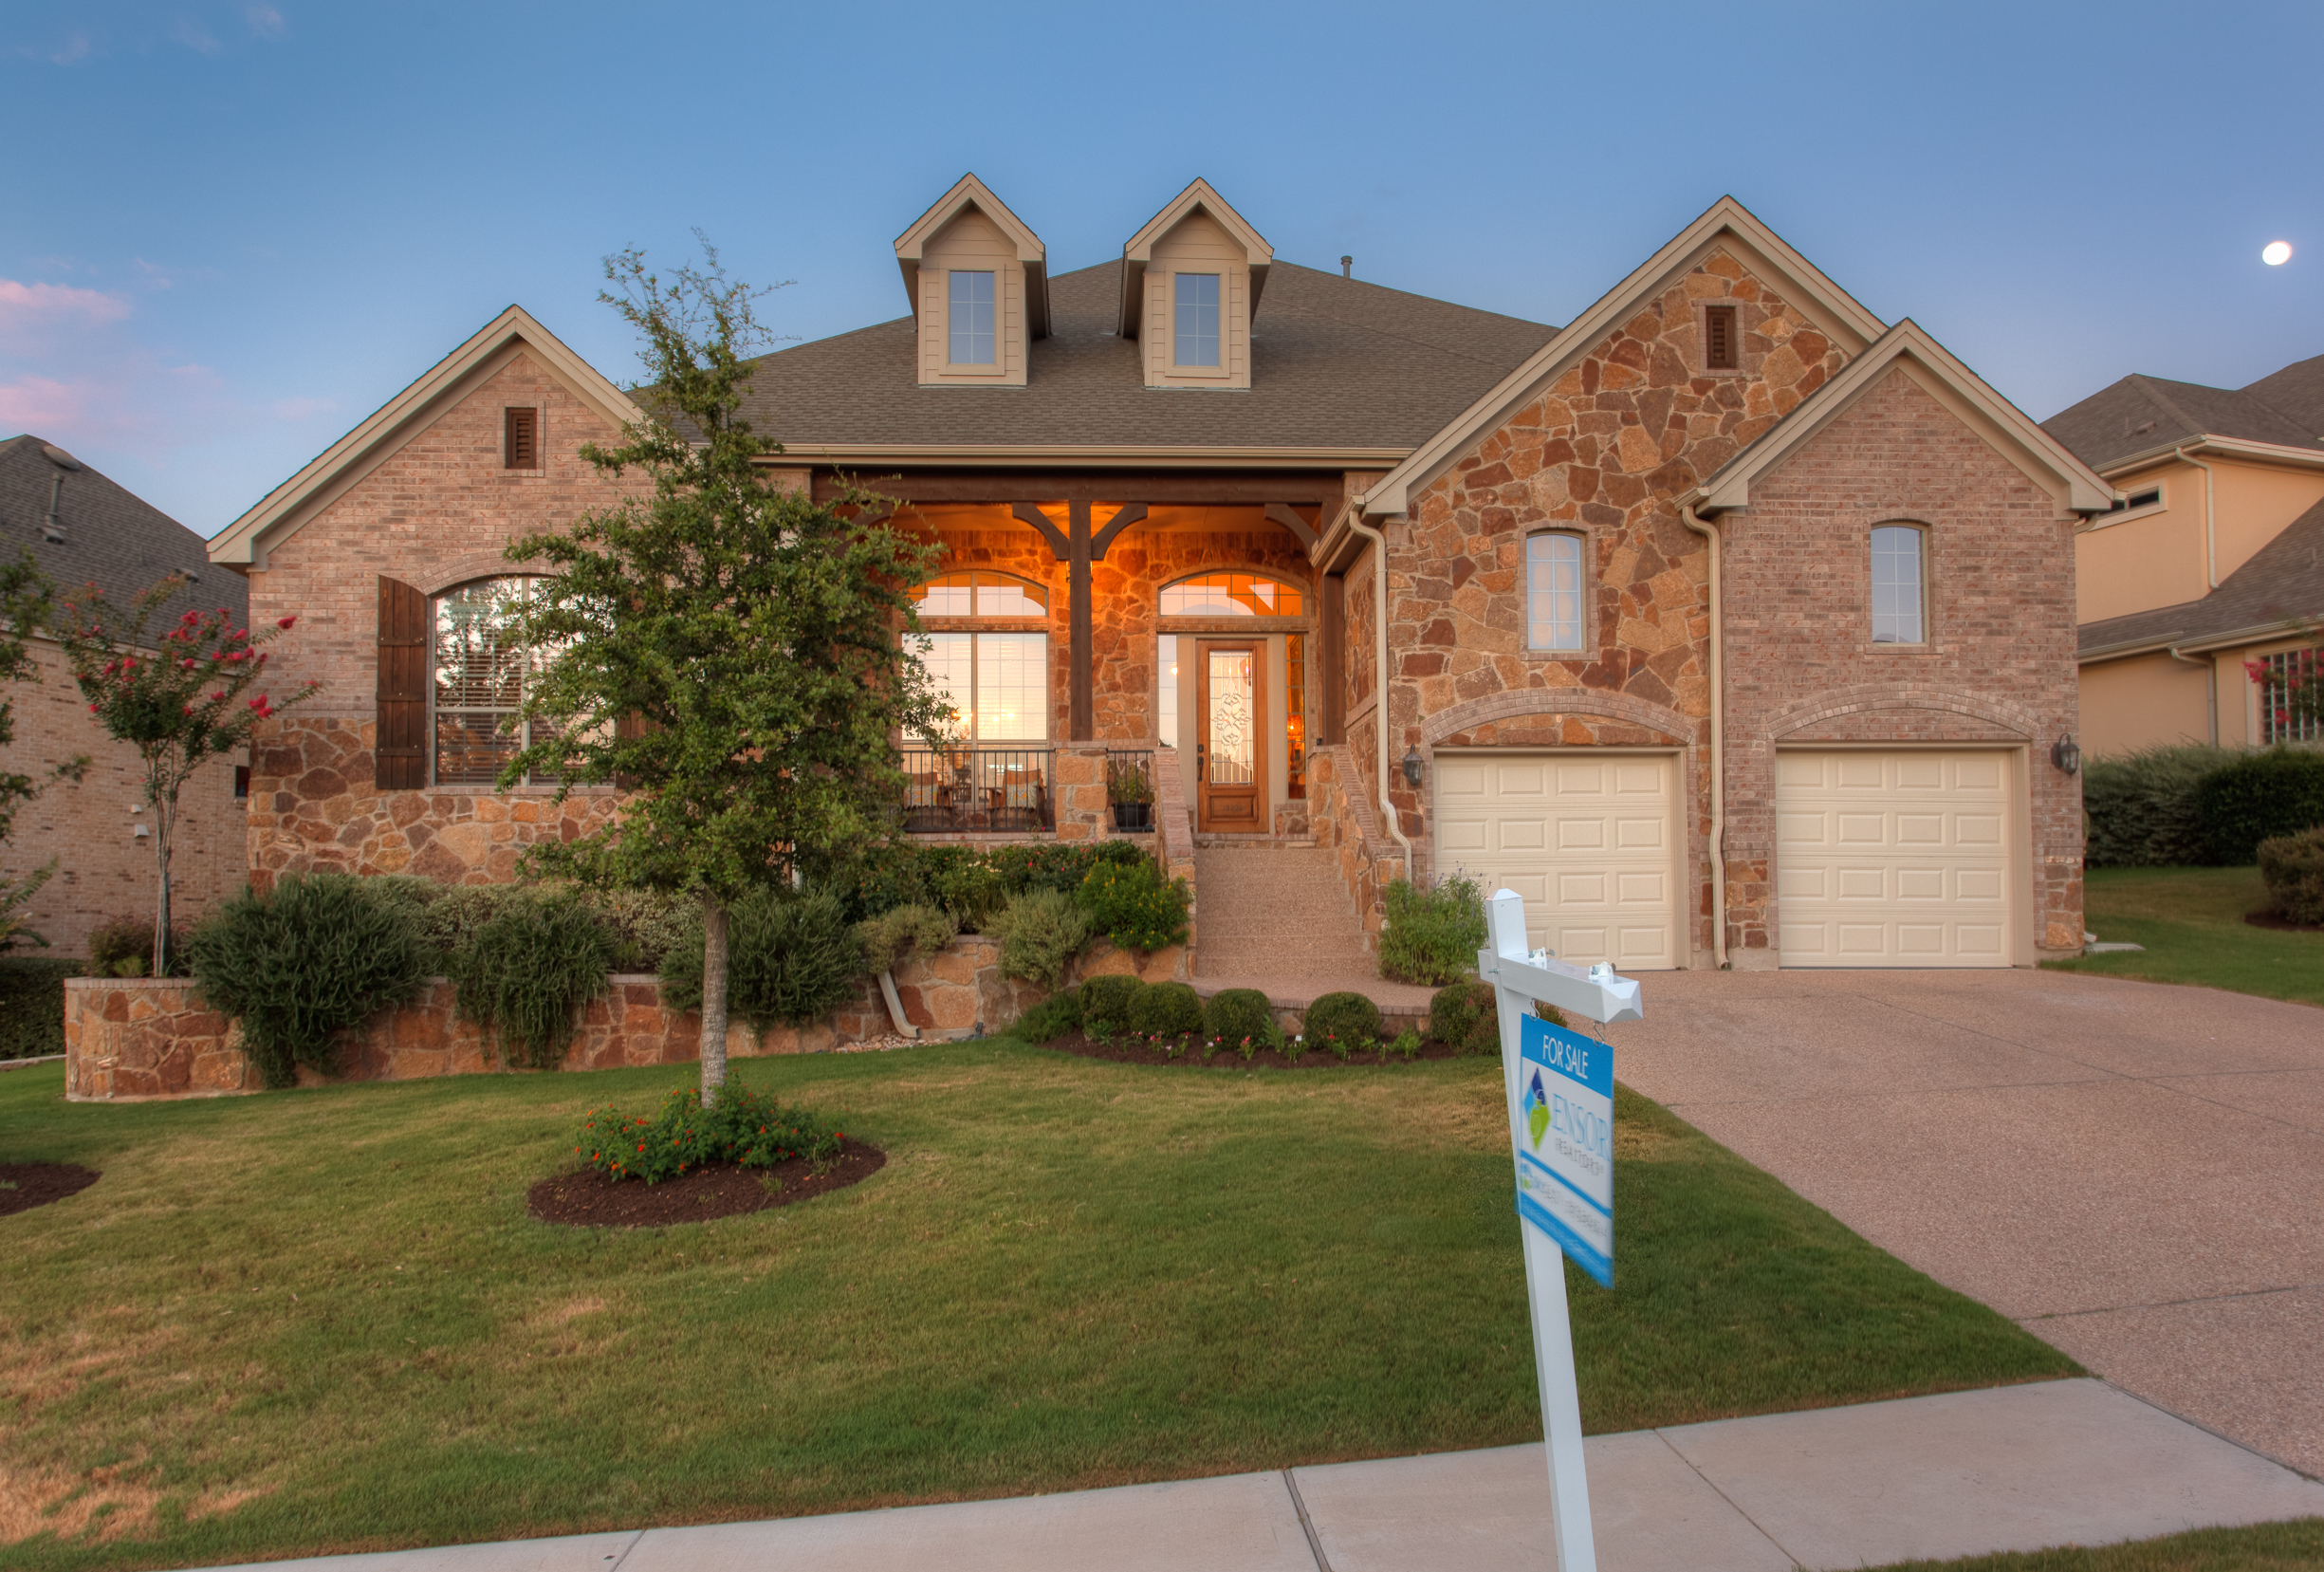 13320 Coleto Creek Trl - Home For Sale in River Heights Overlook Steiner Ranch